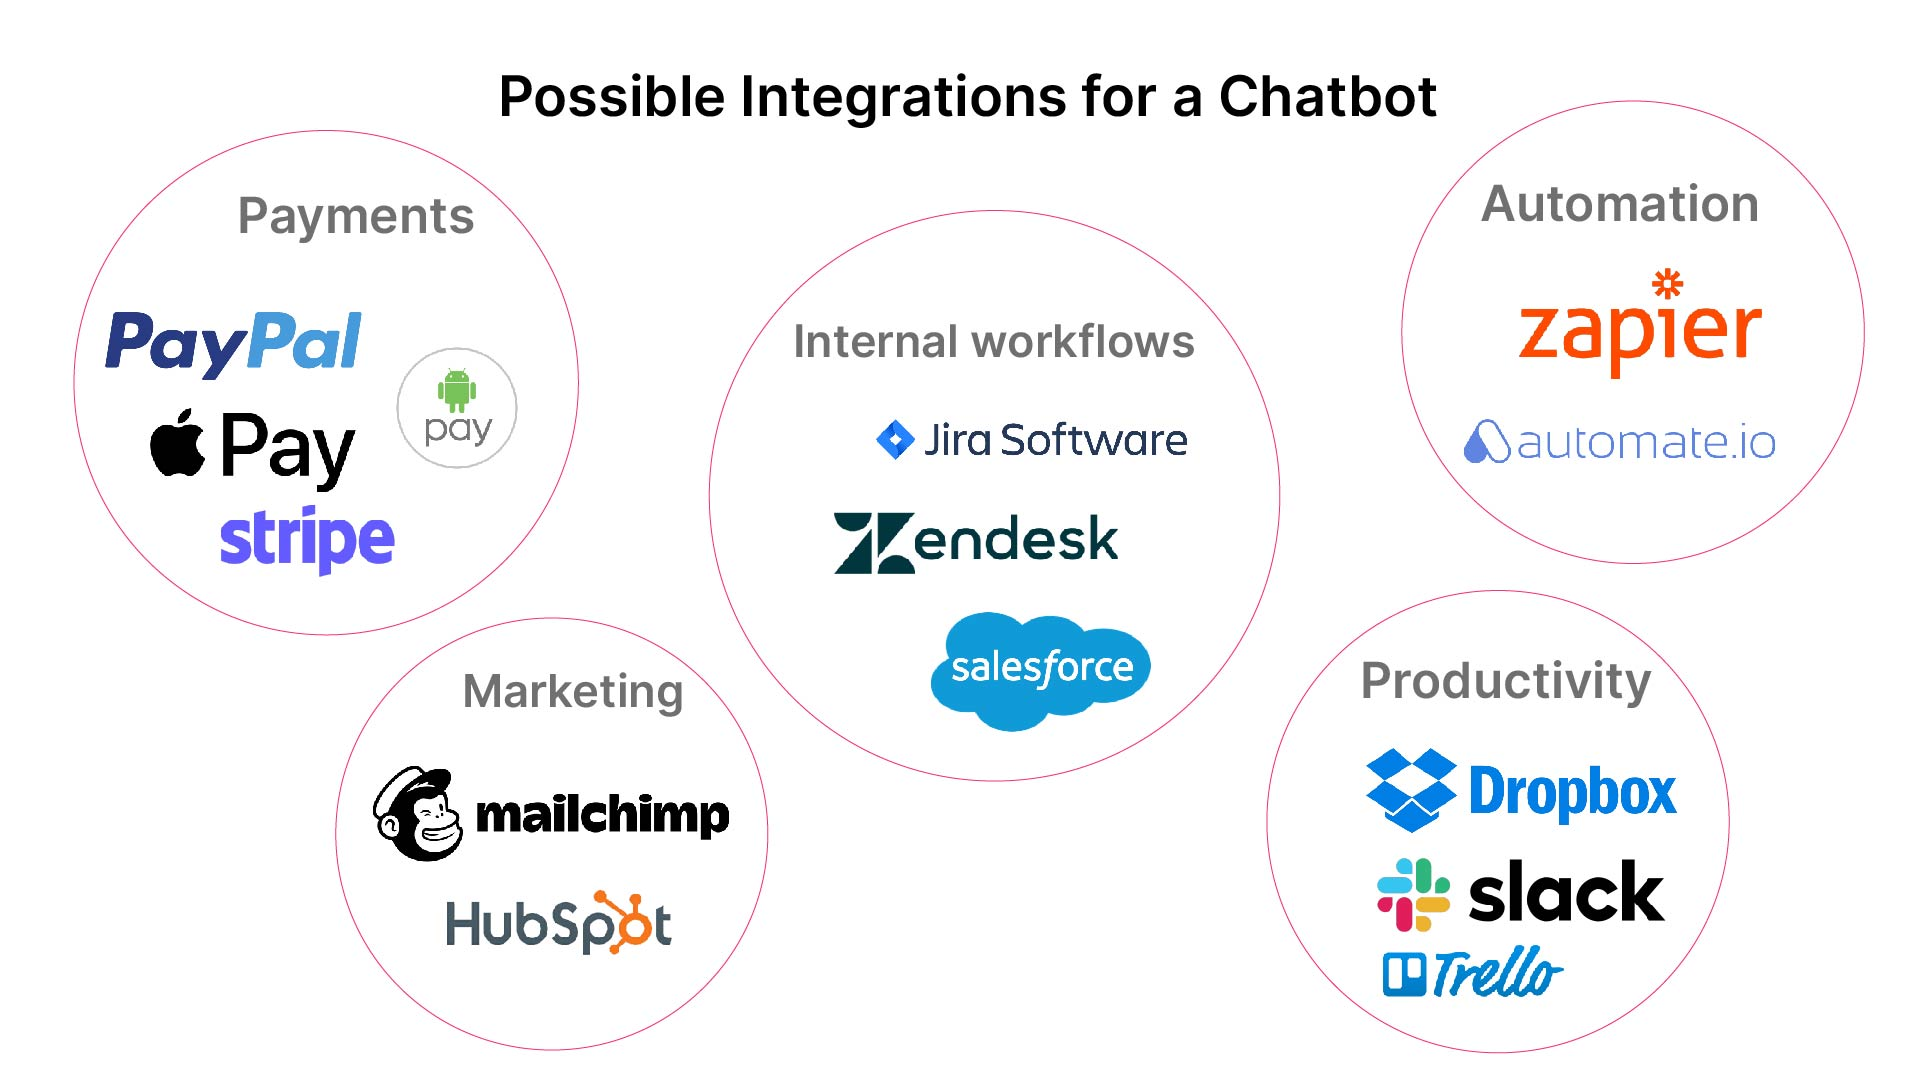 Possible Integrations for a Chatbot